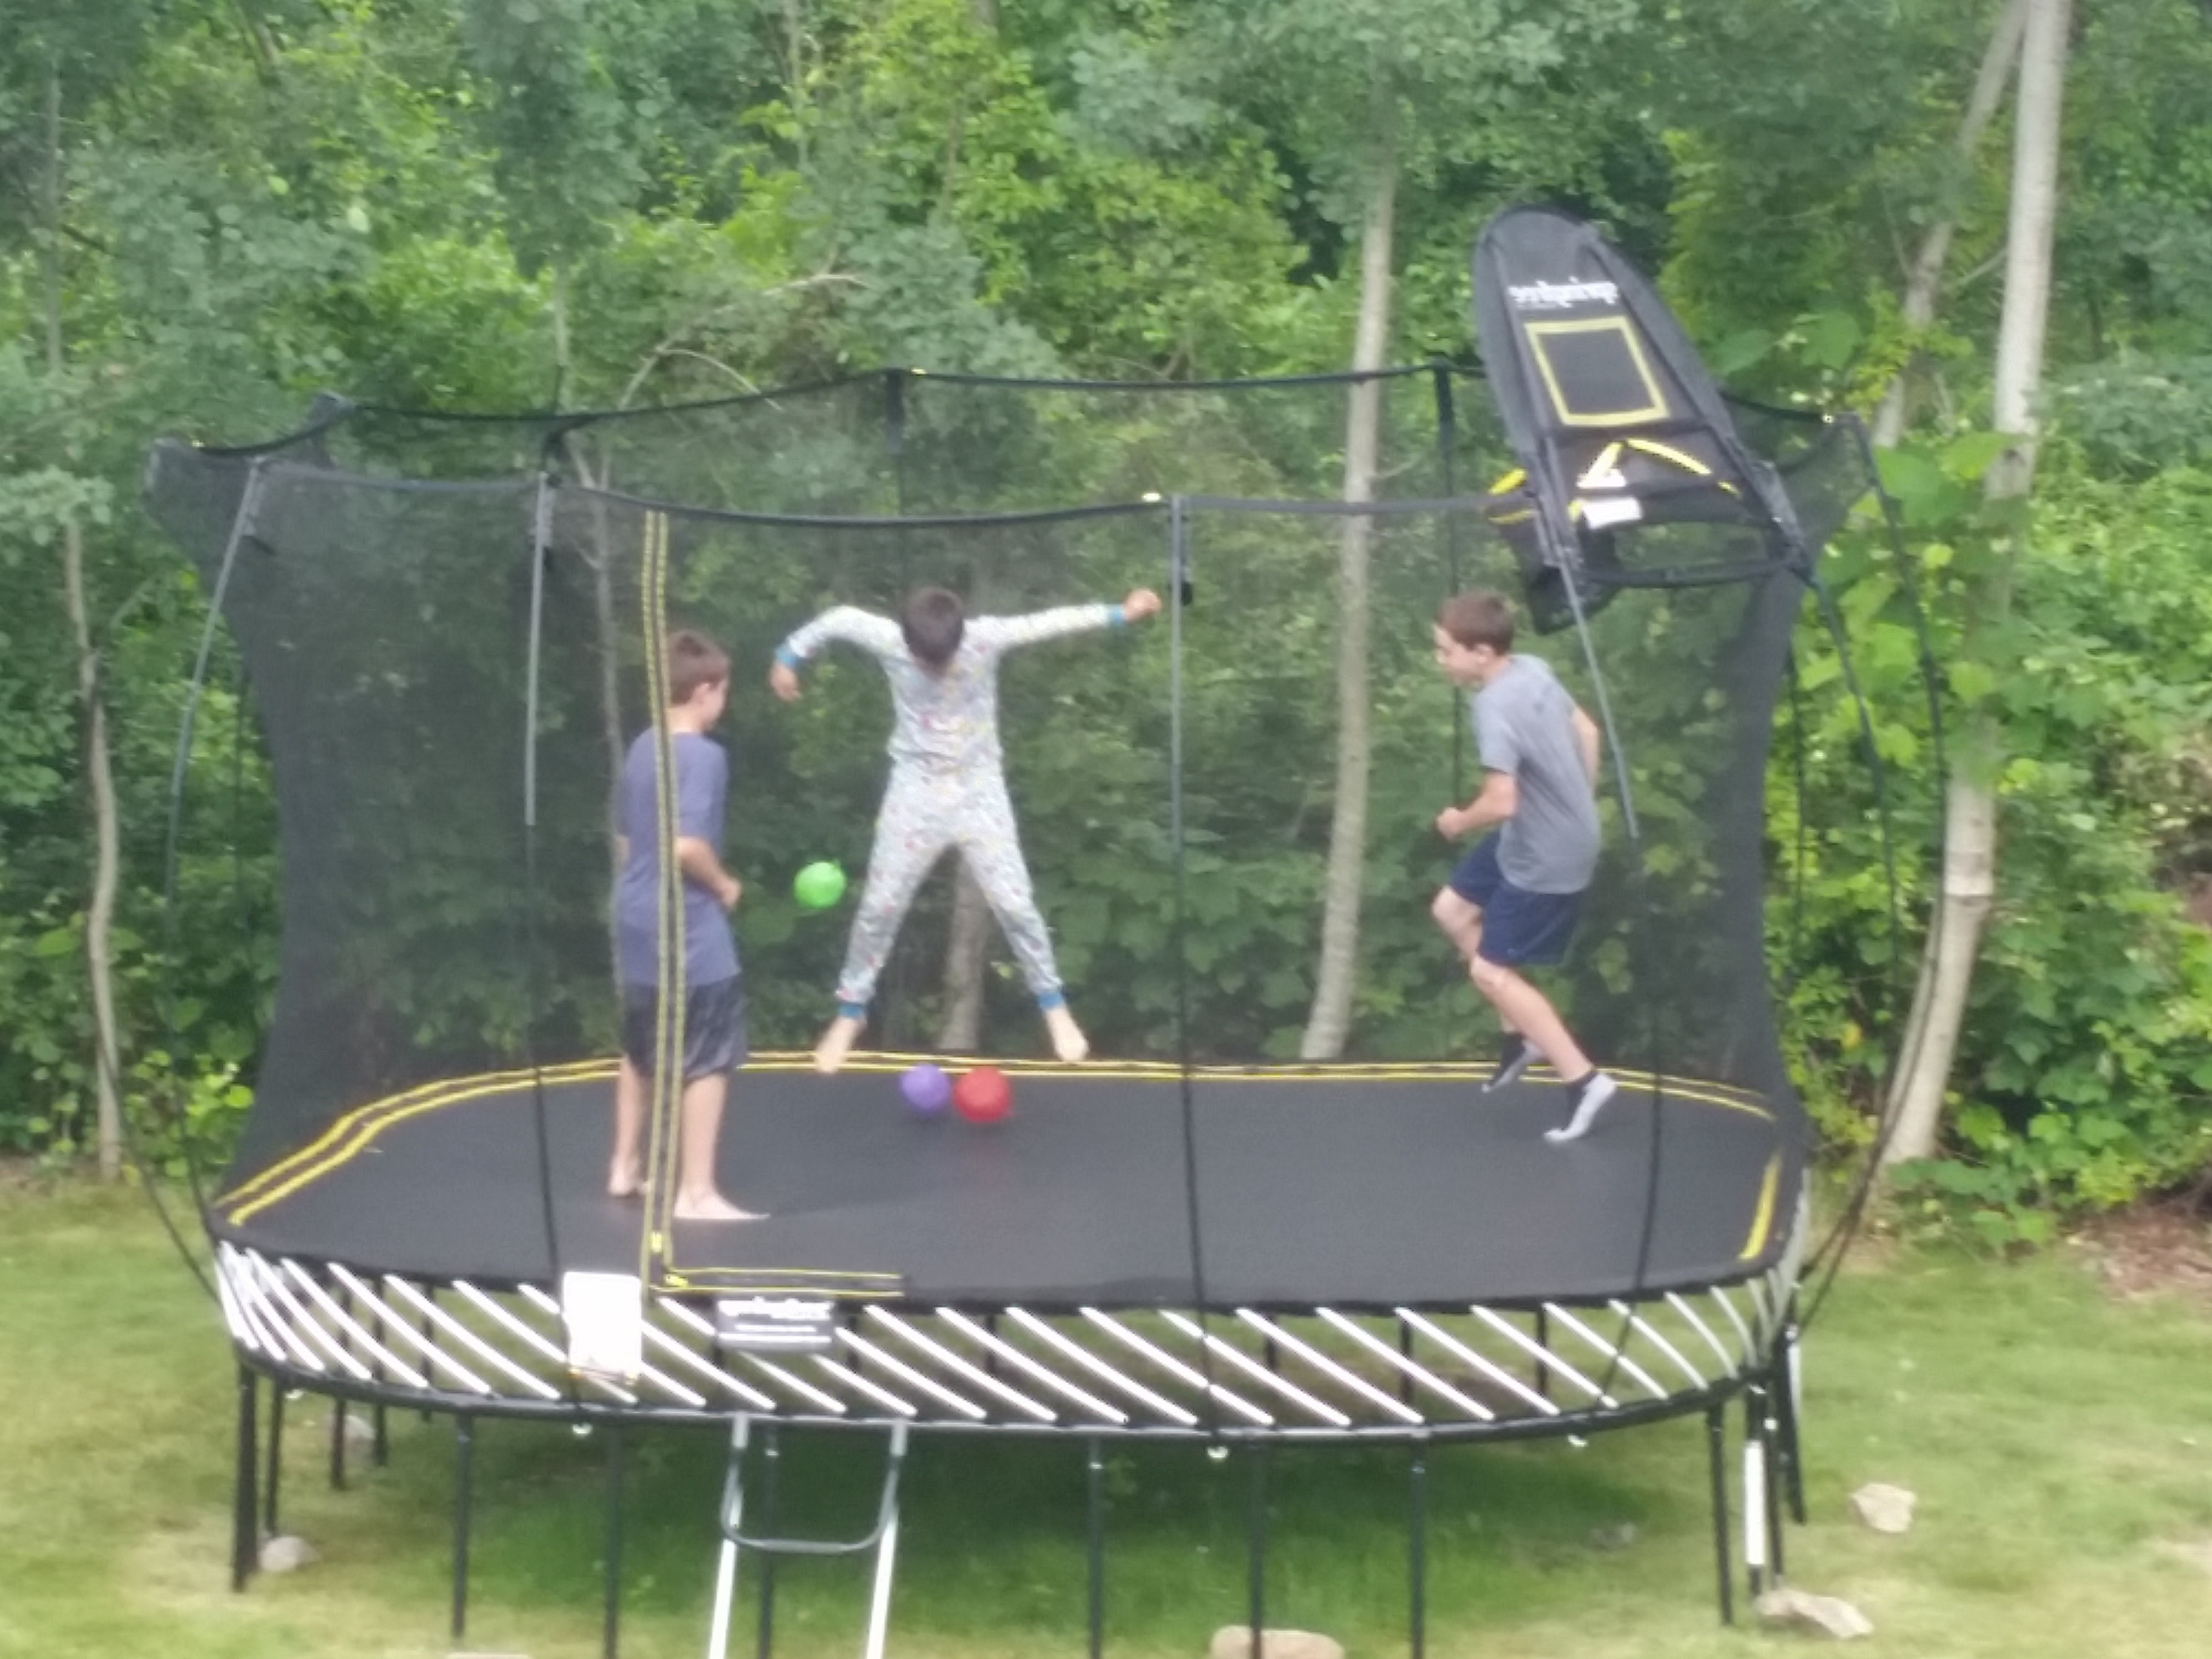 Boys on trampoline